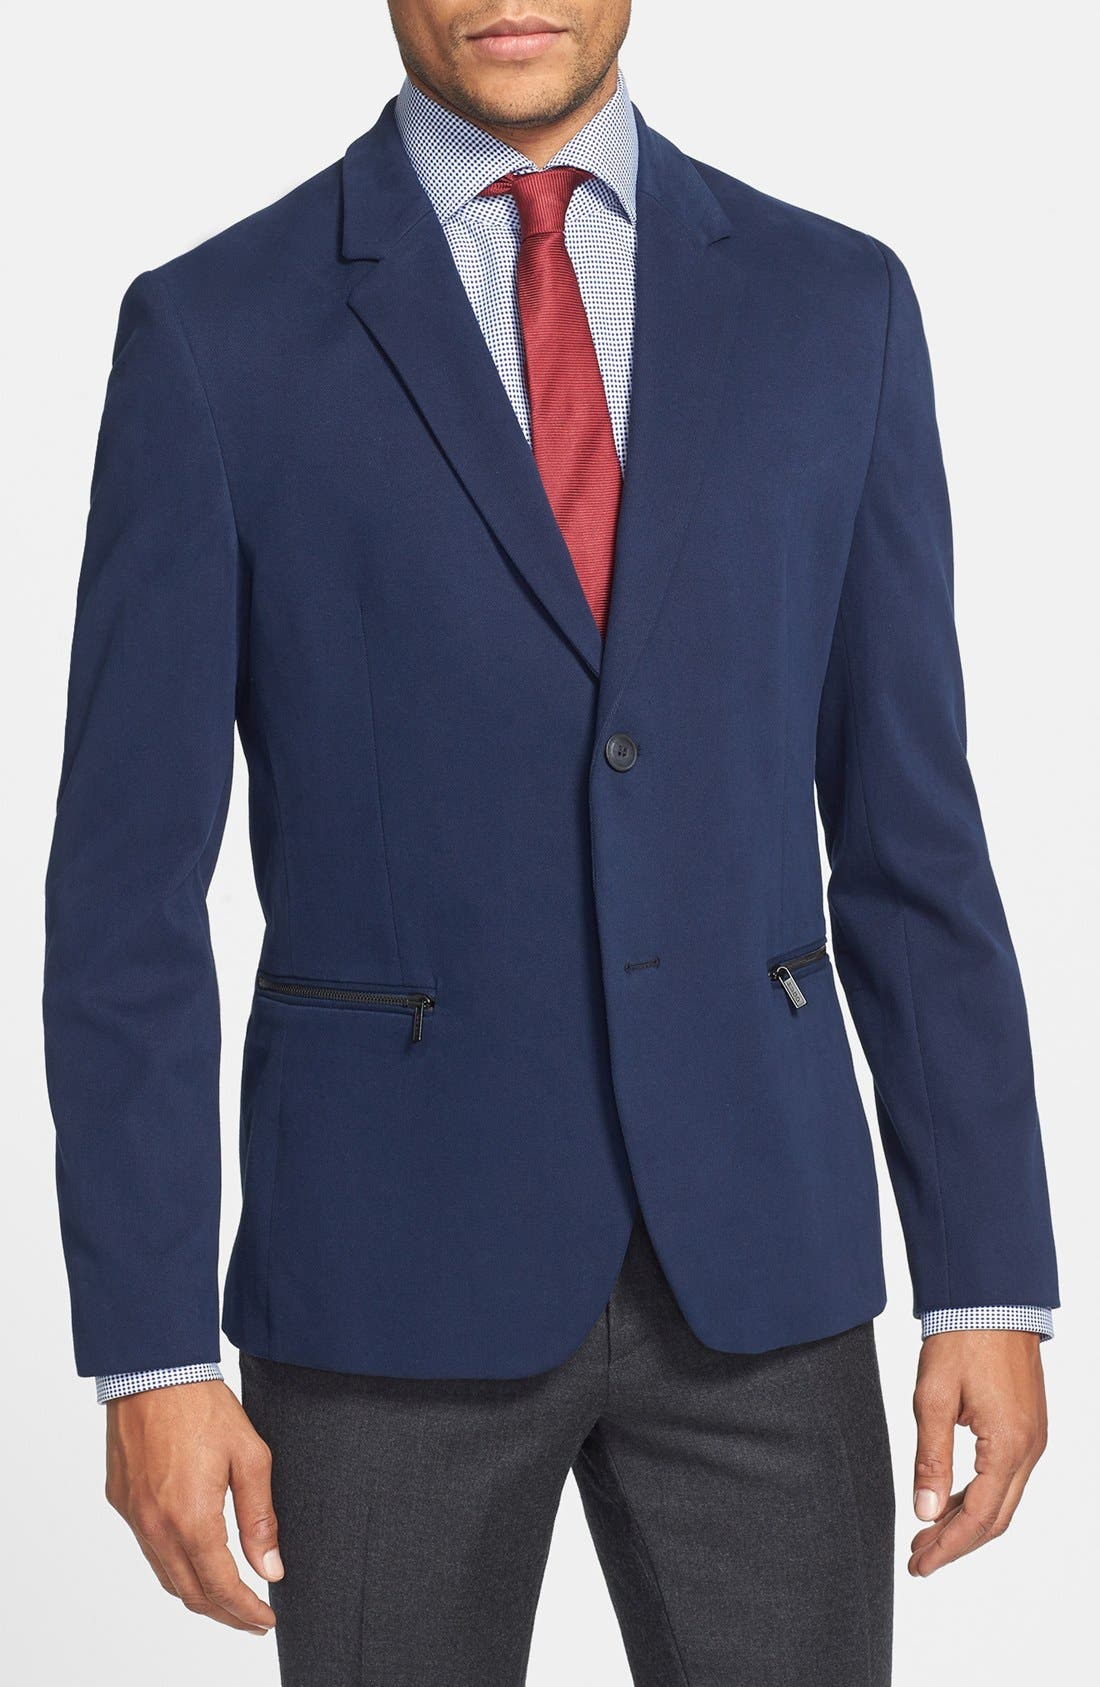 Alternate Image 1 Selected - HUGO 'Alston' Sportcoat